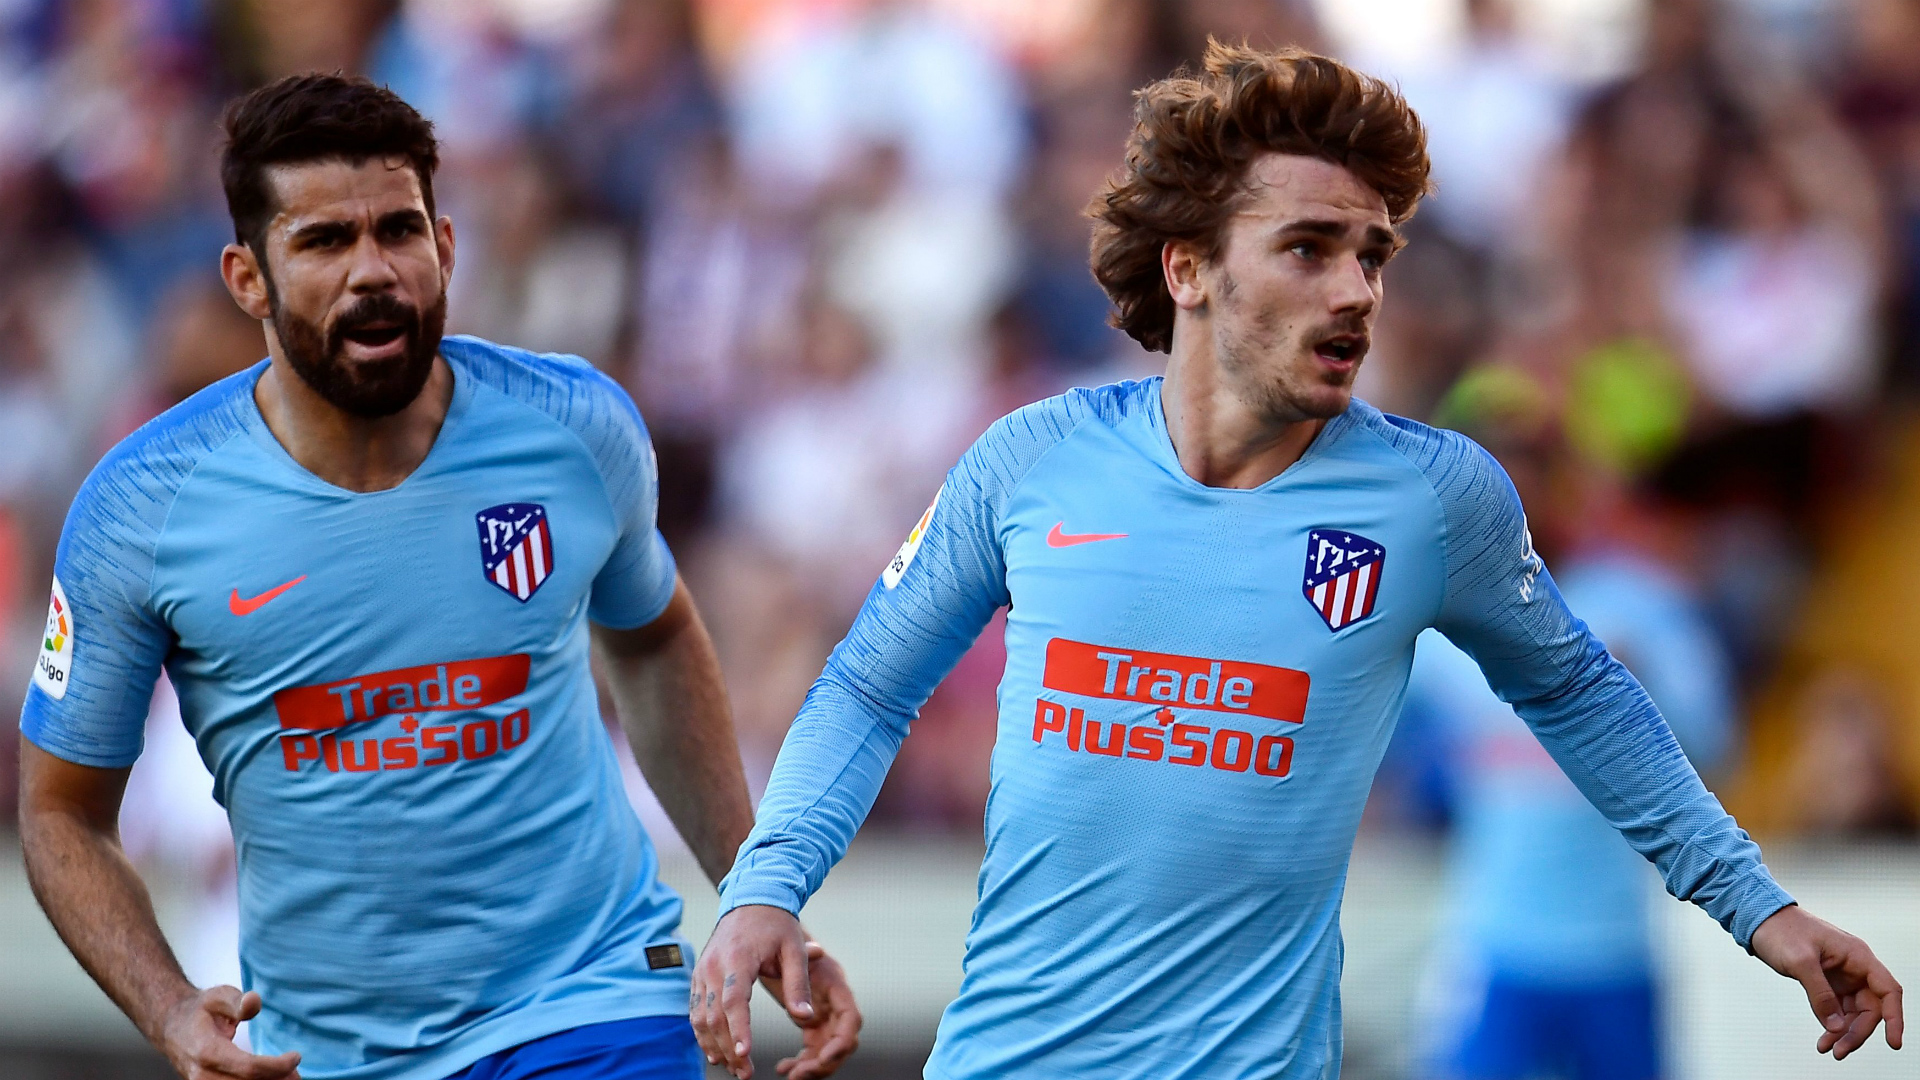 Griezmann helps below-par Atletico scrape win over Rayo